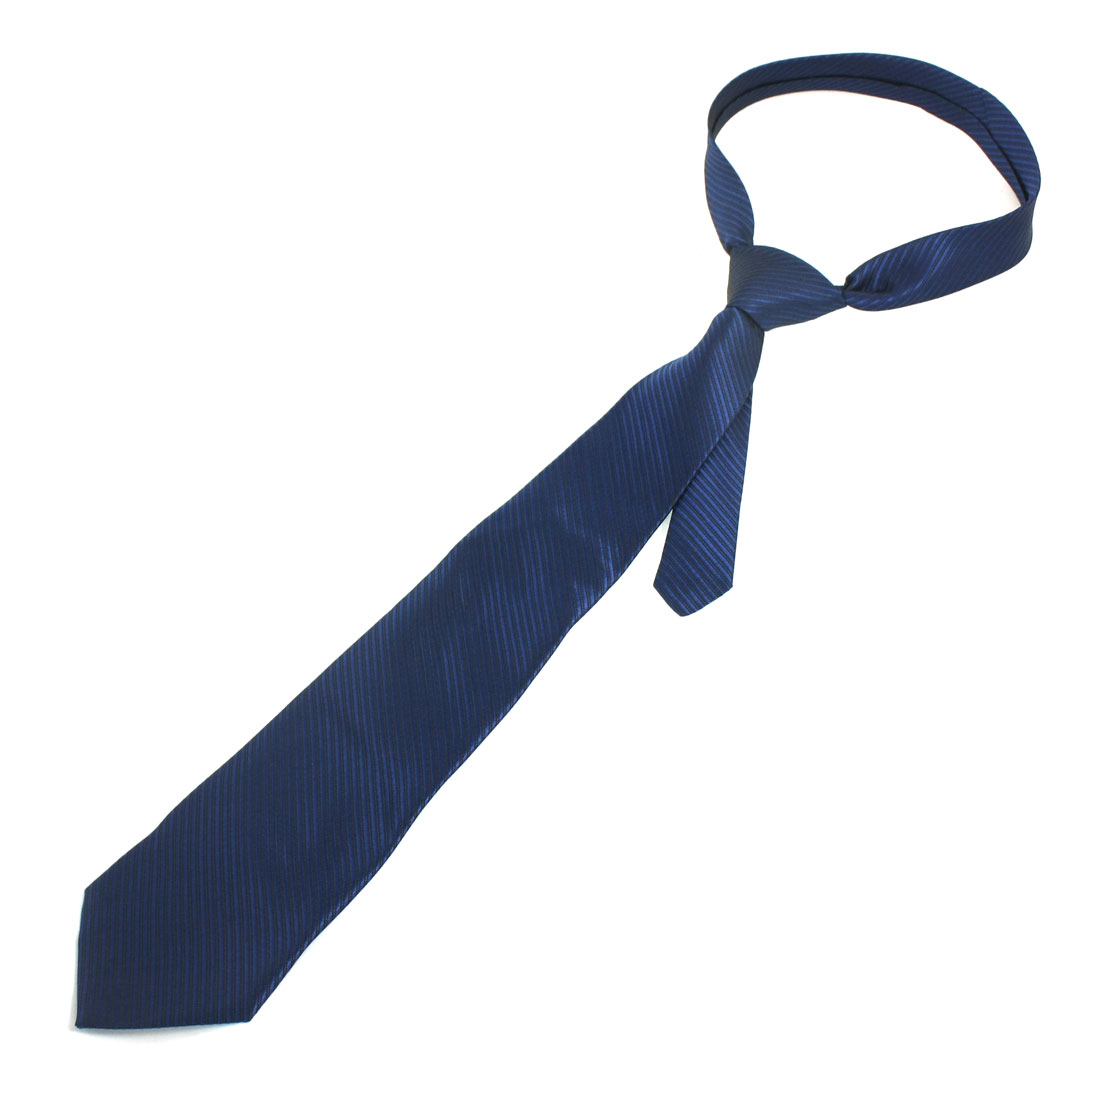 Man Polyester Diagonal Striped Textured Neck Tie Black Navy Blue